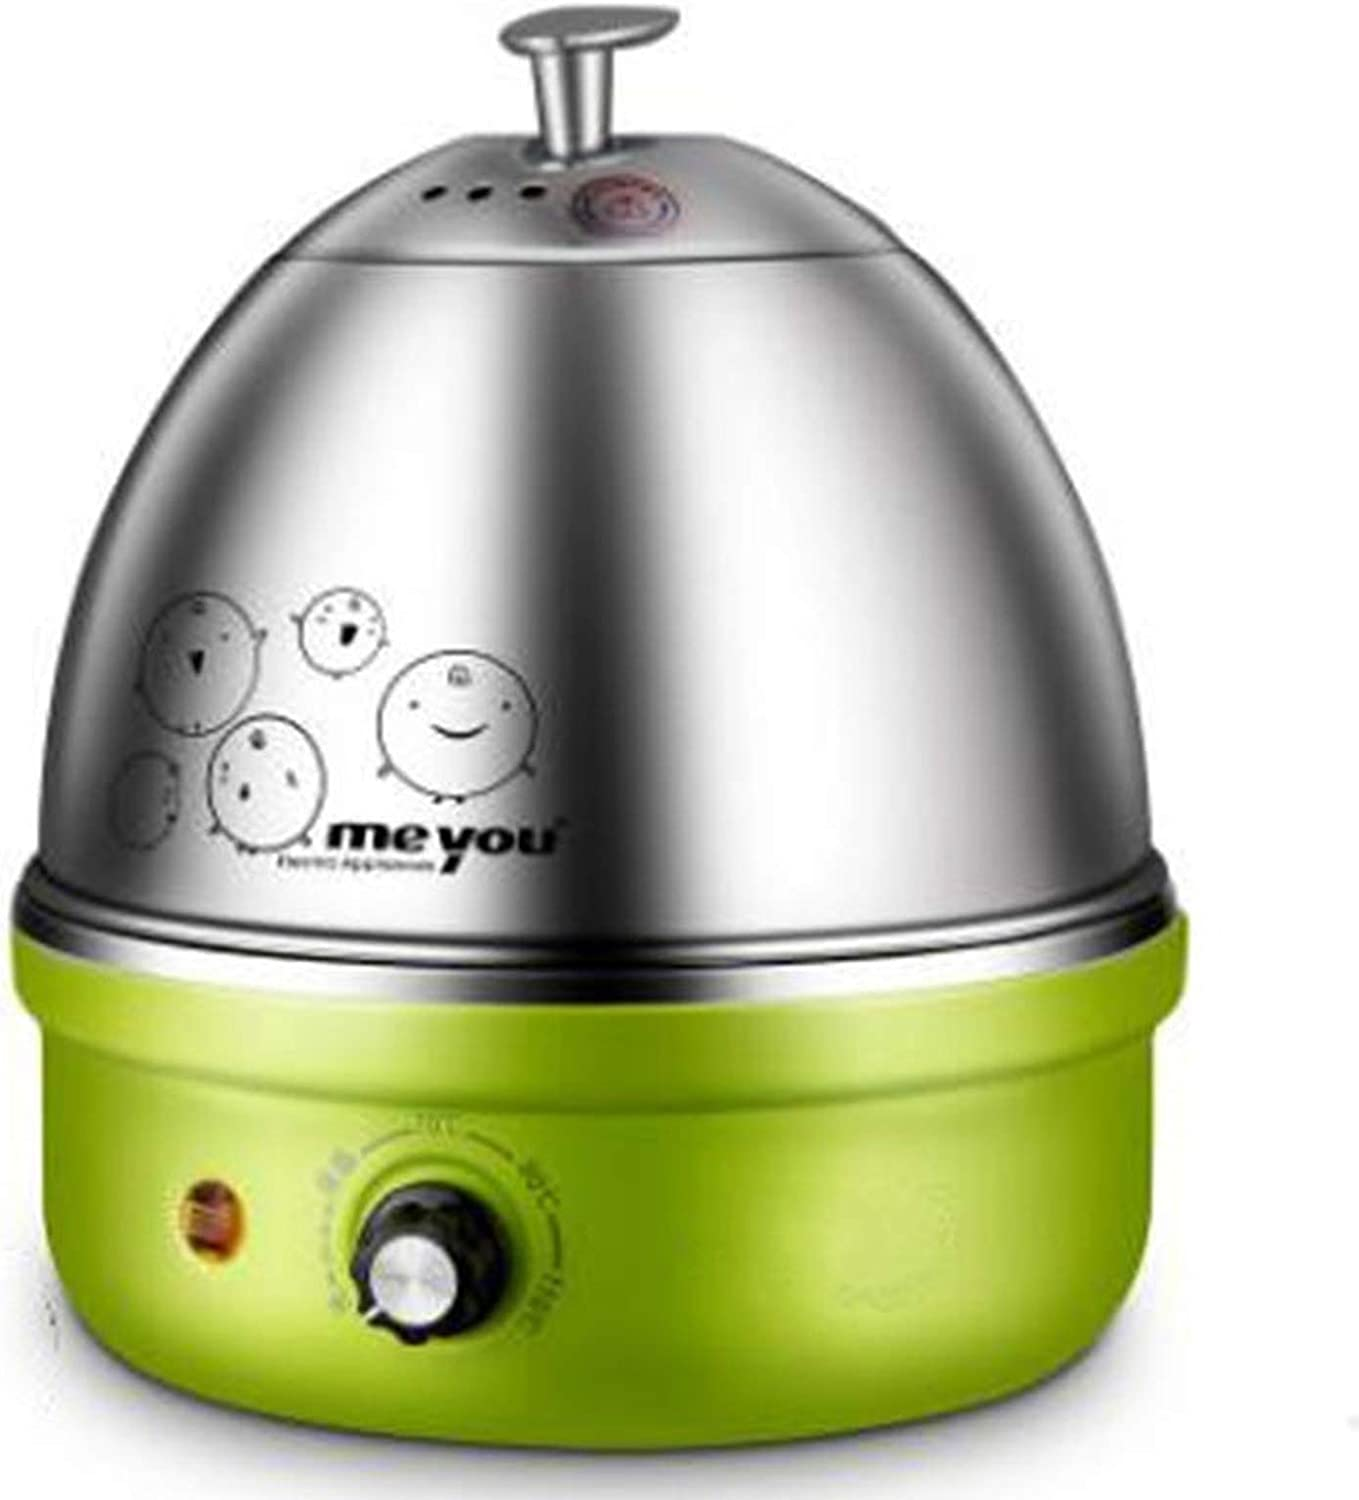 Egg Cookers with Auto Shut Off,Full Stainless Steel Electric Egg Cooker Up To 7 Eggs for Soft, Medium, Hard Boiled, Poached, Custard (Green)